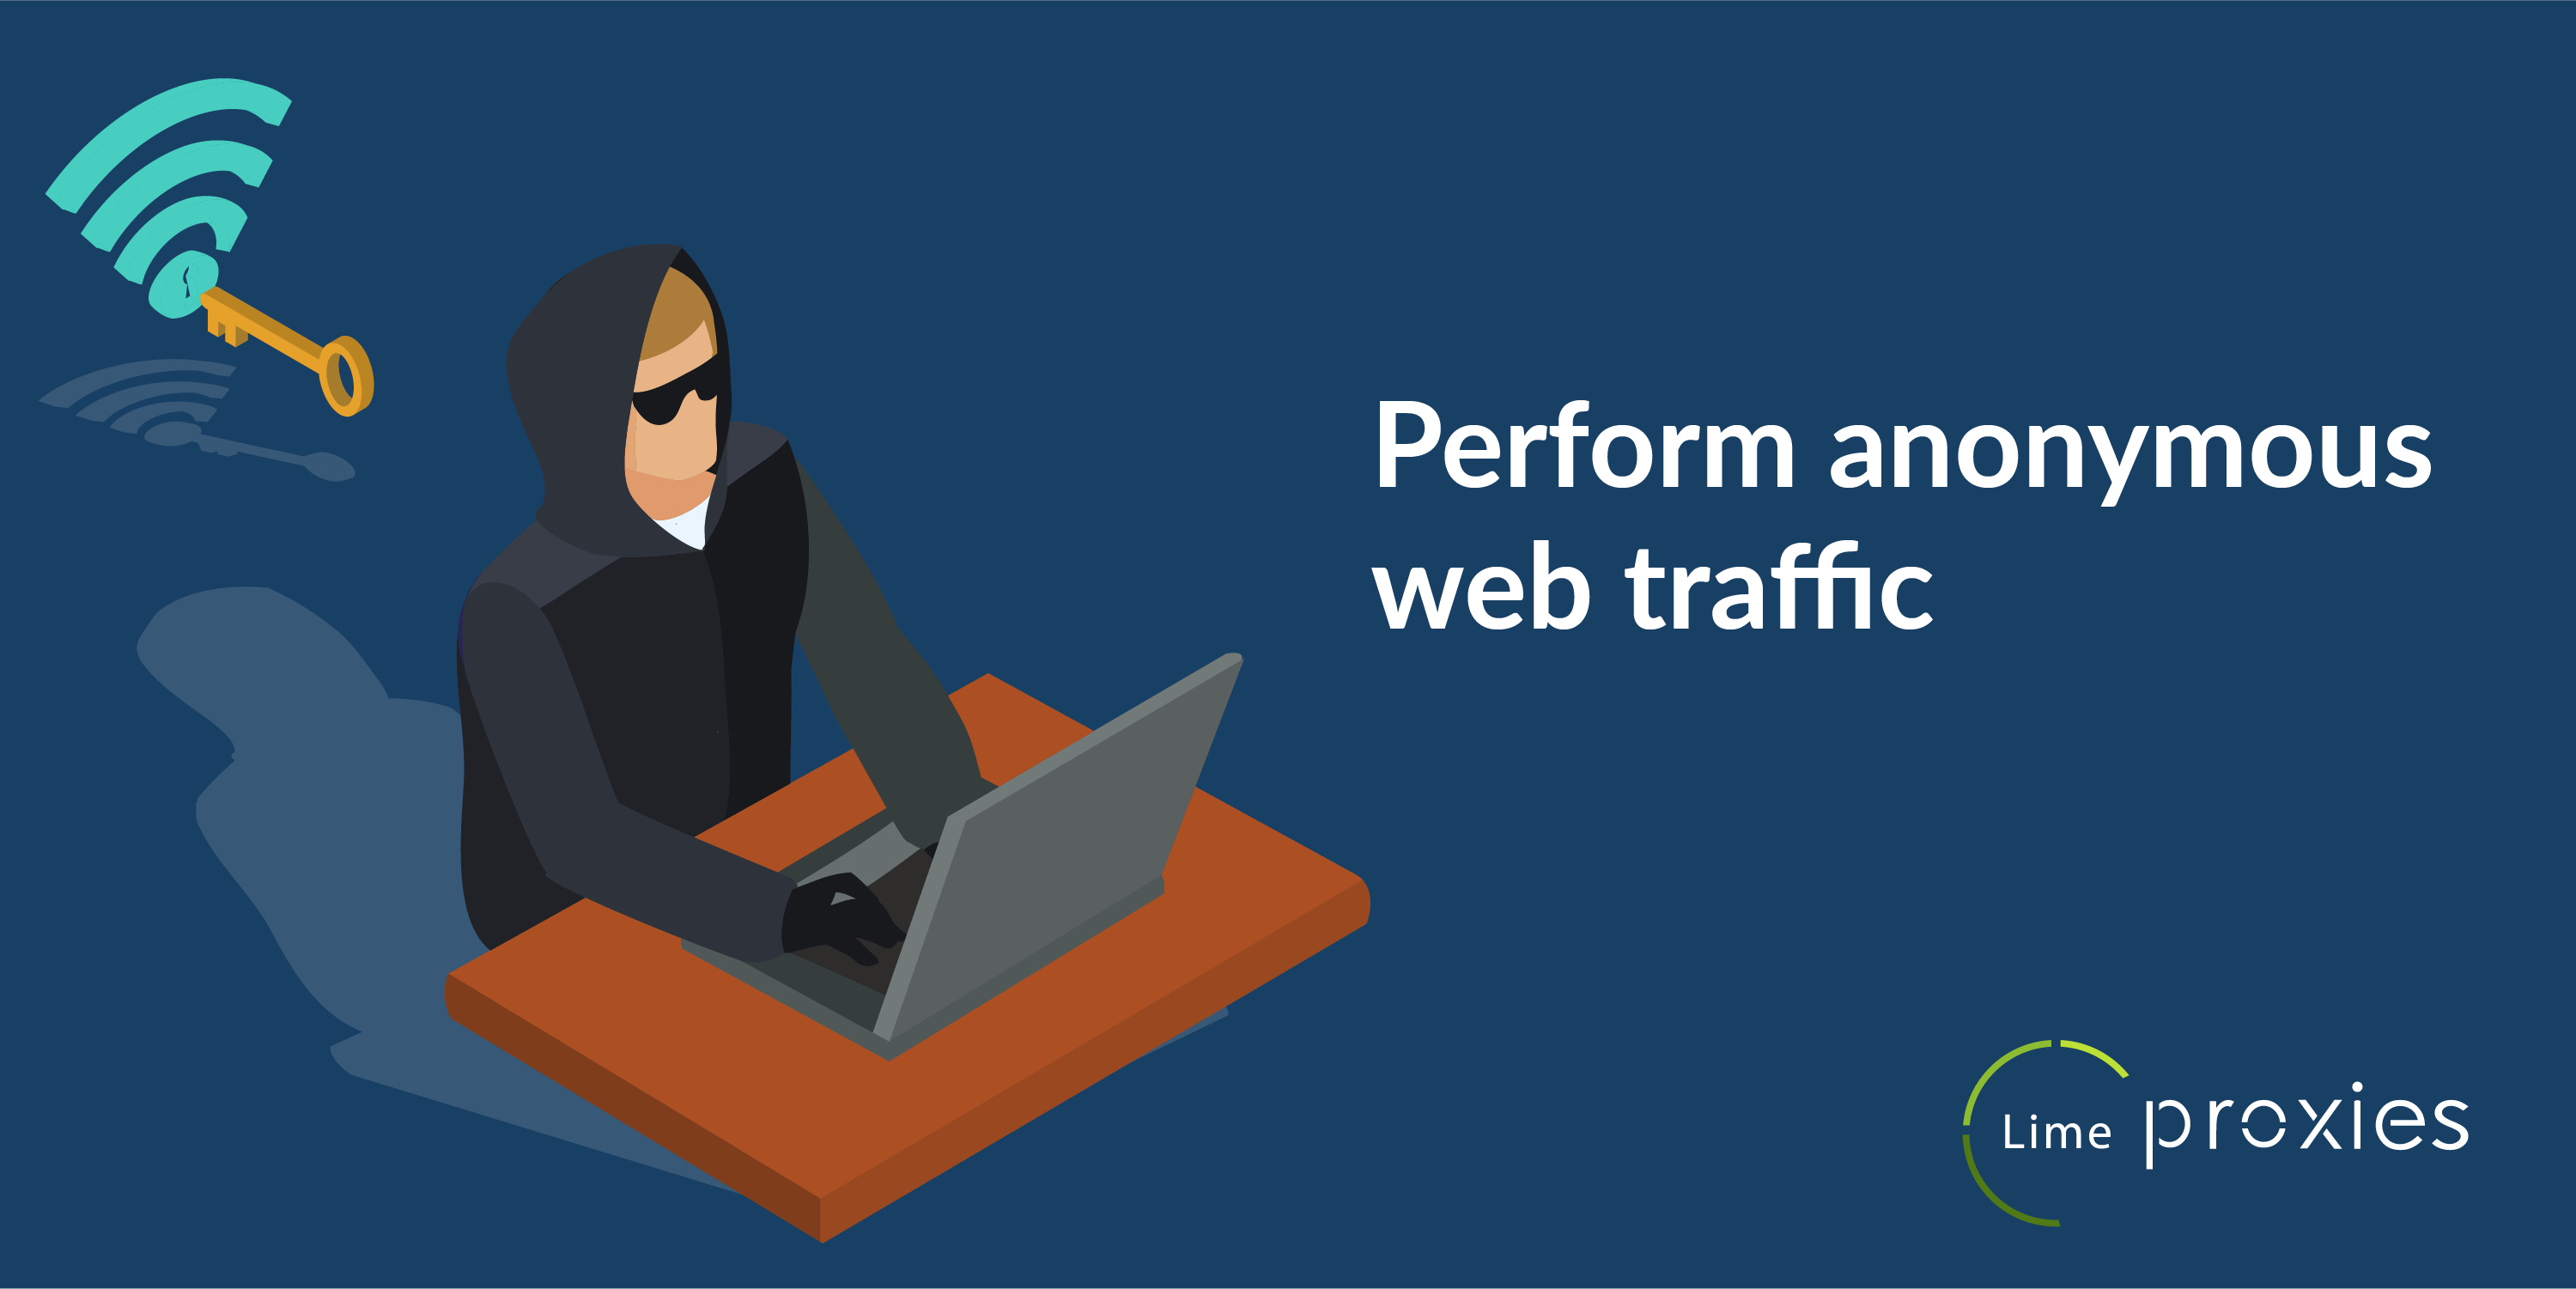 PERFORM ANONYMOUS WEB TRAFFIC